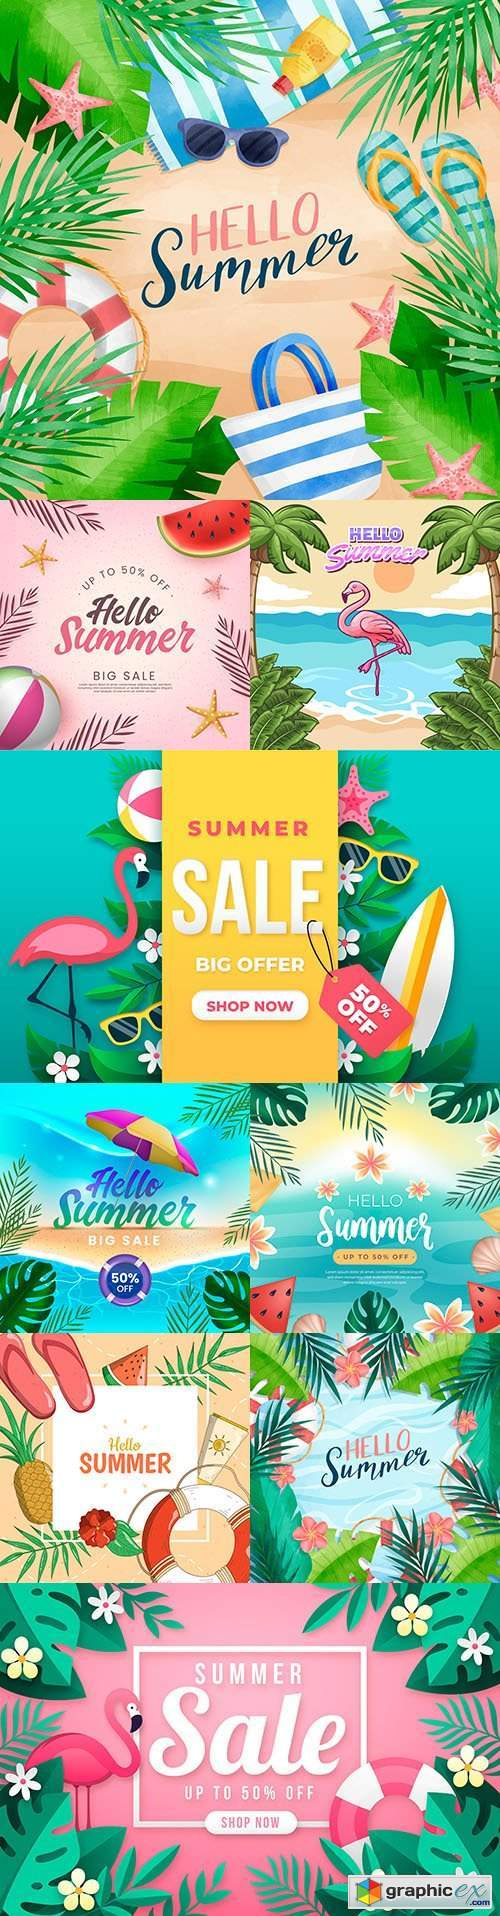 Hello summer seasonal sale design with tropical leaves